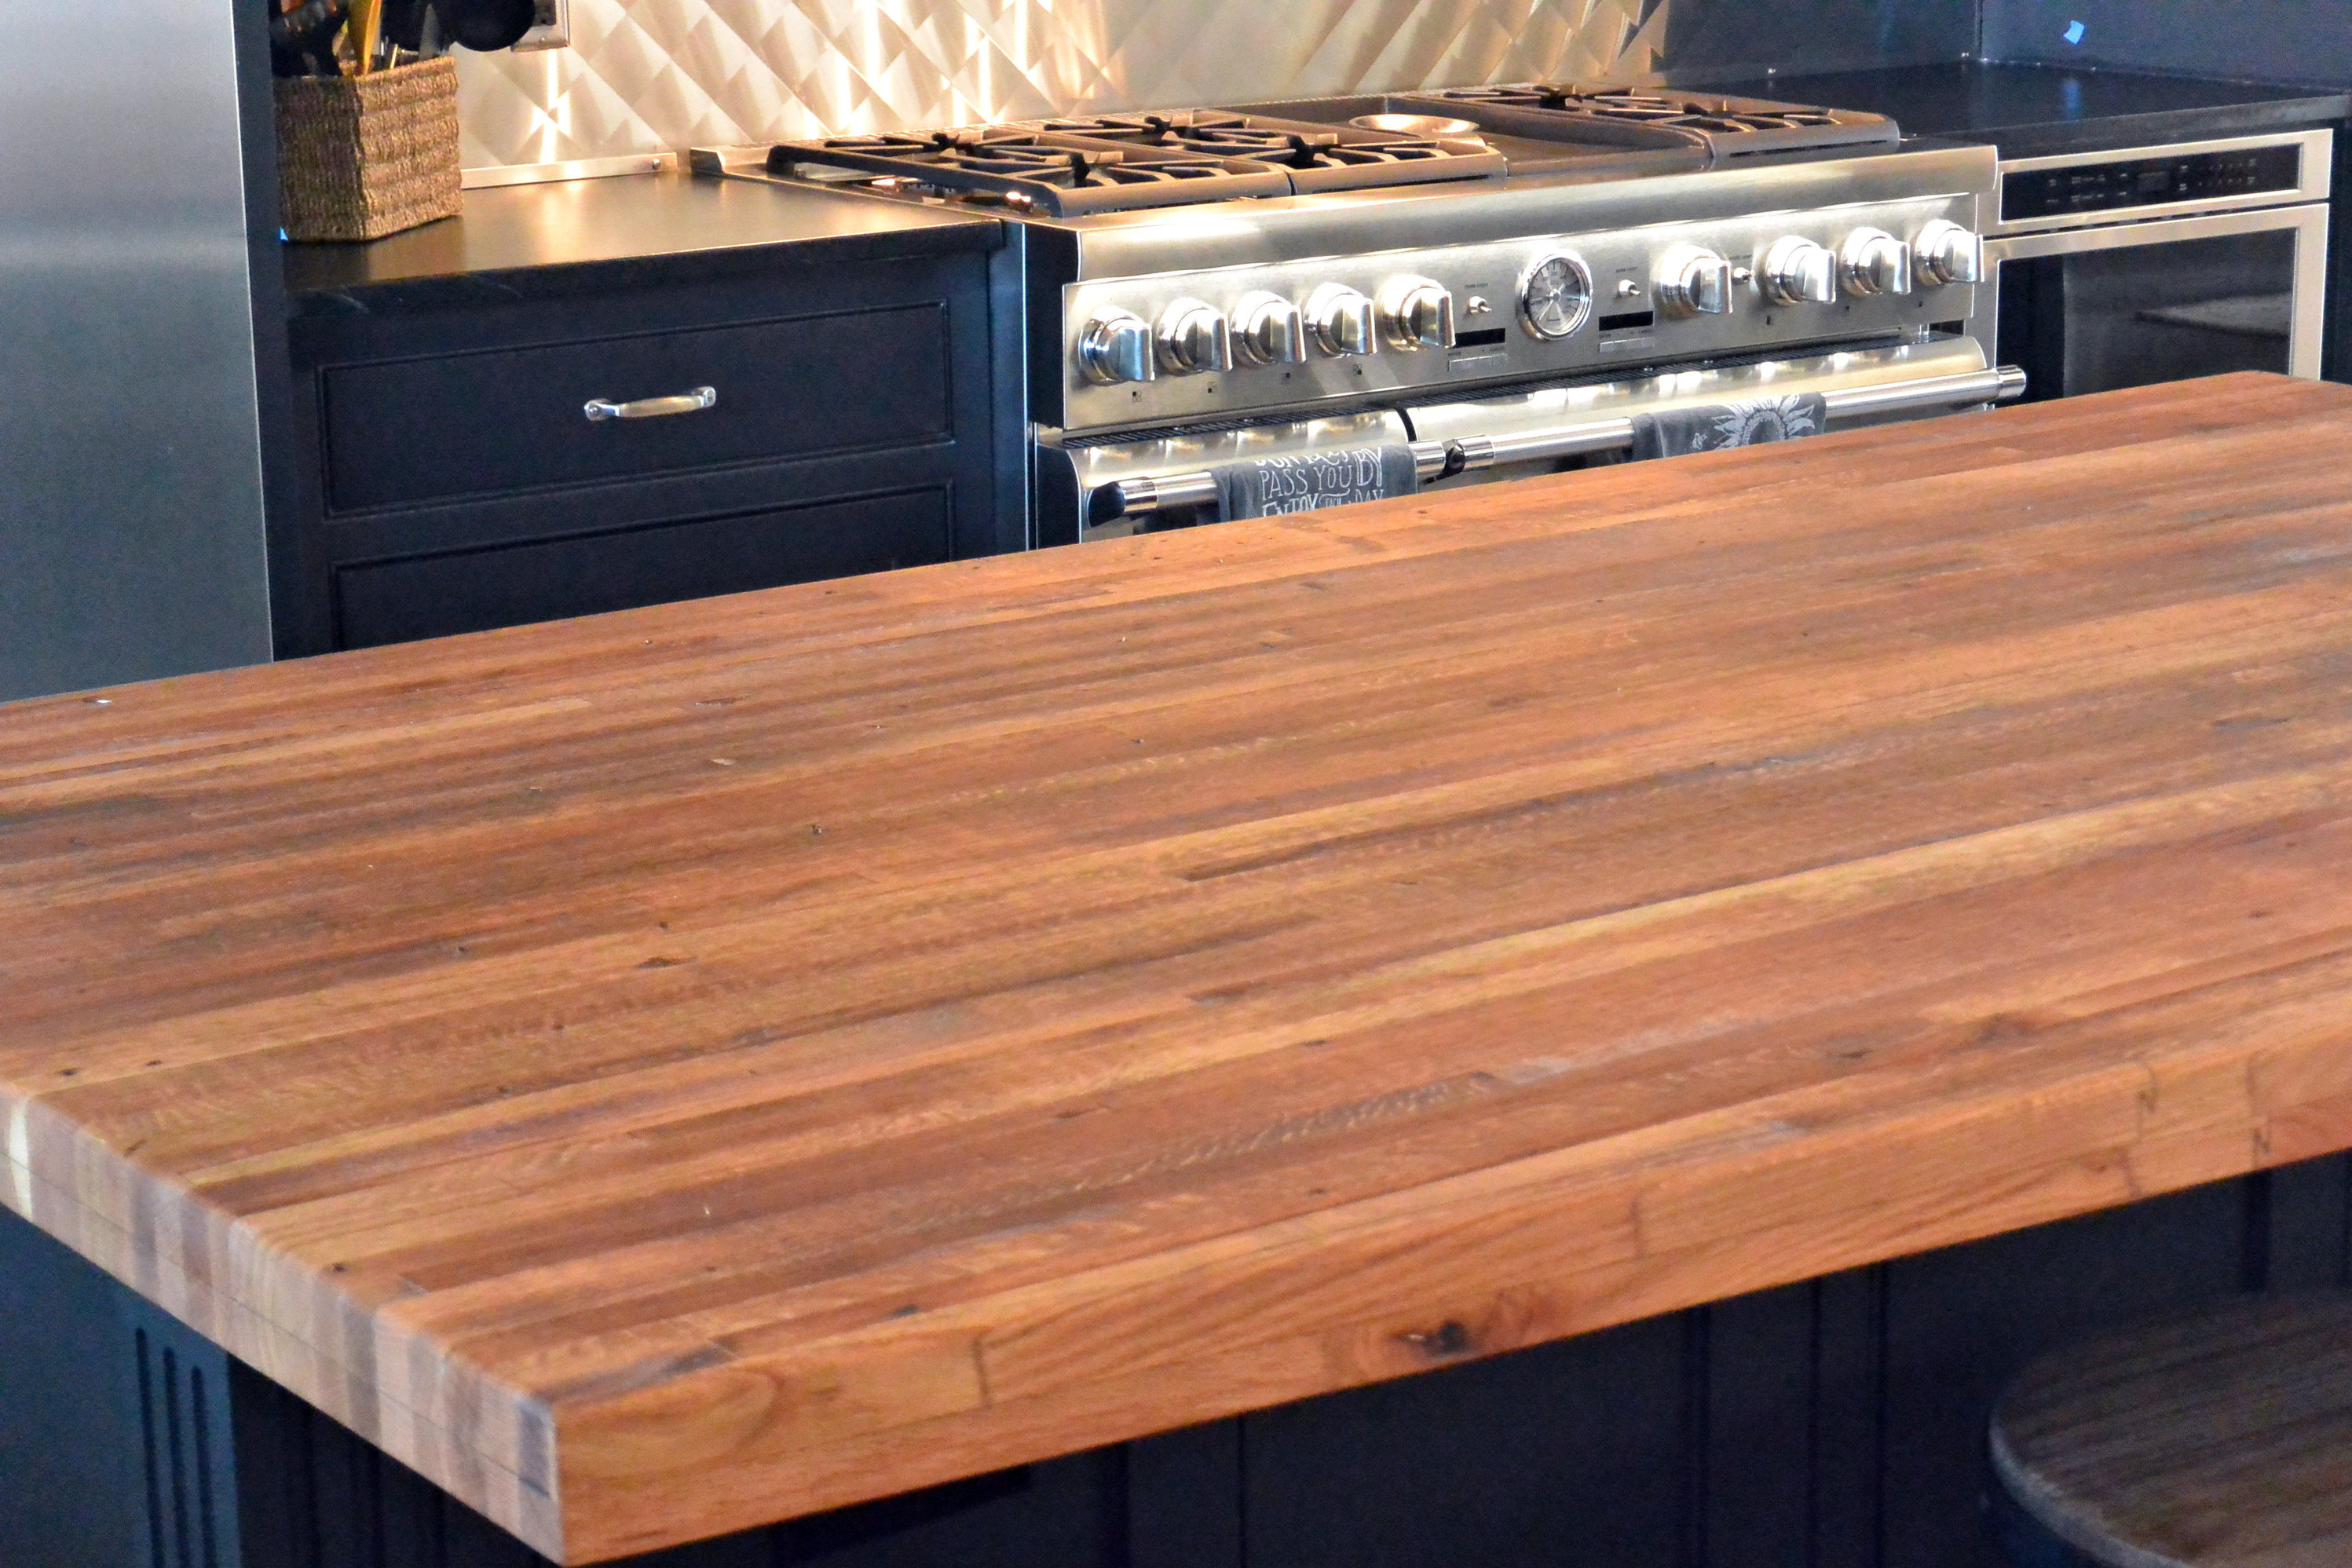 Tung Oil For Butcher Block Countertops Reclaimed Boxcar Flooring Wood Countertop Photo Gallery